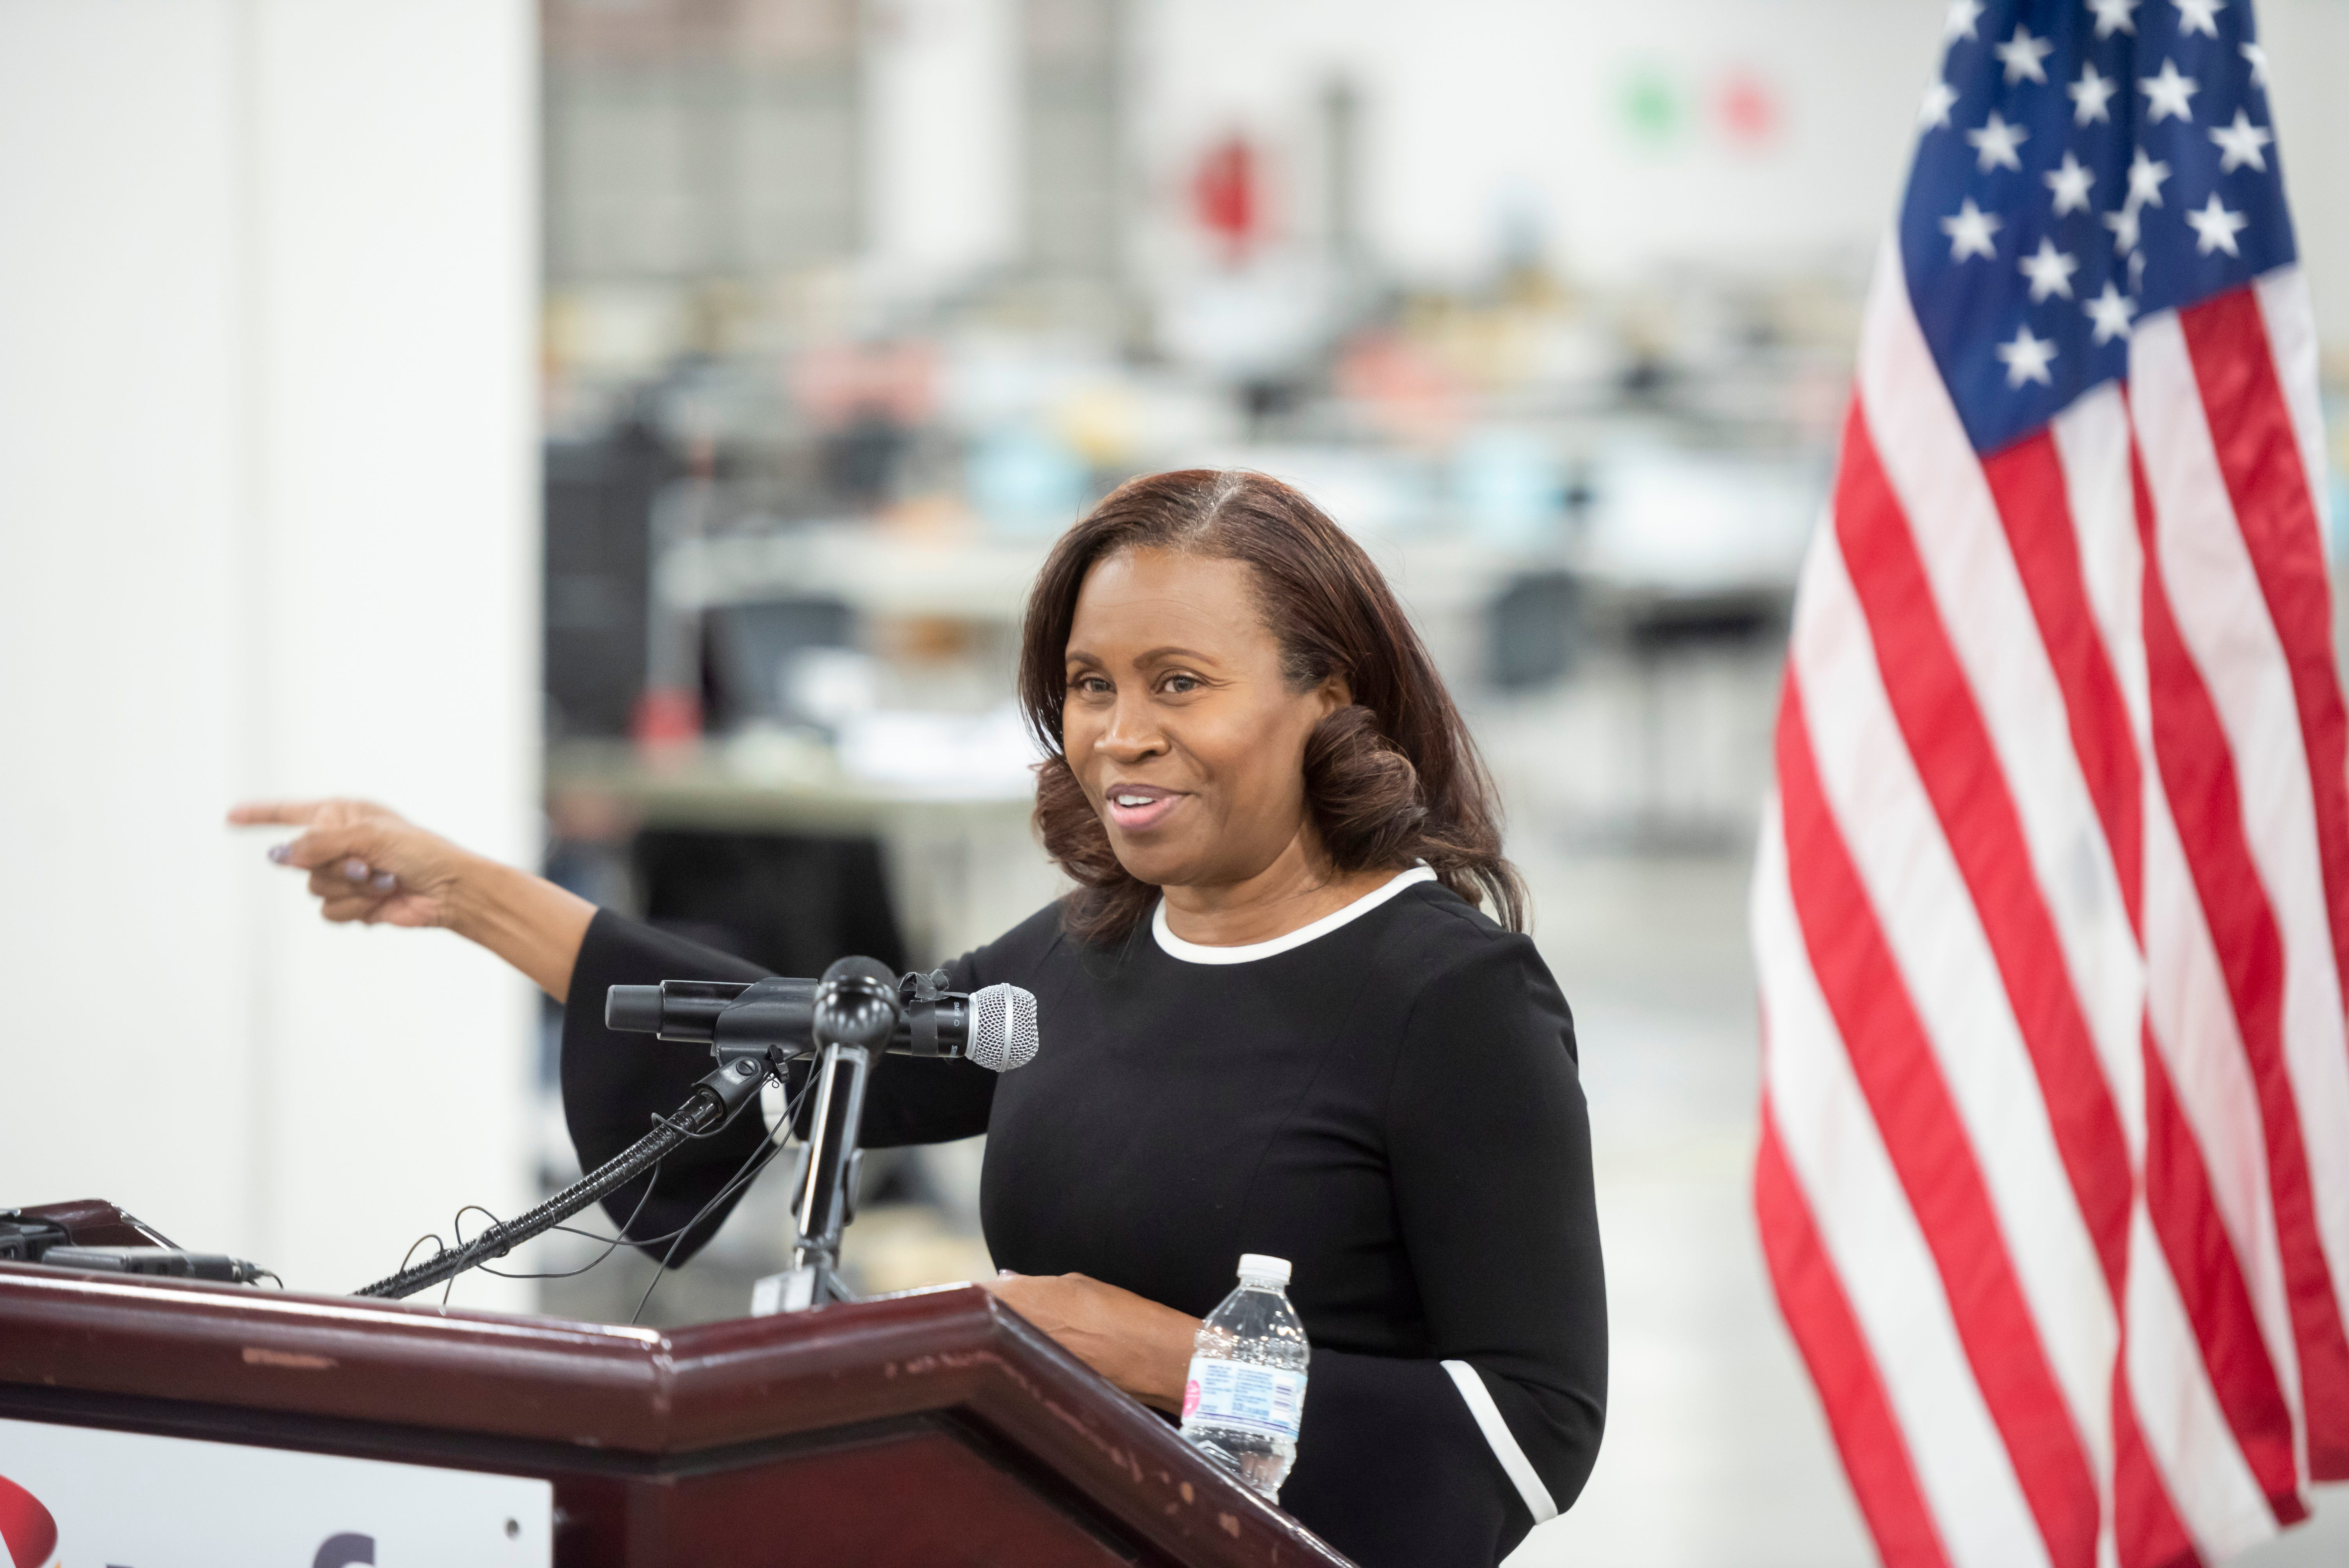 Can Winfrey win another term as Detroit's clerk? Some say it's 'anybody's race' with these challengers